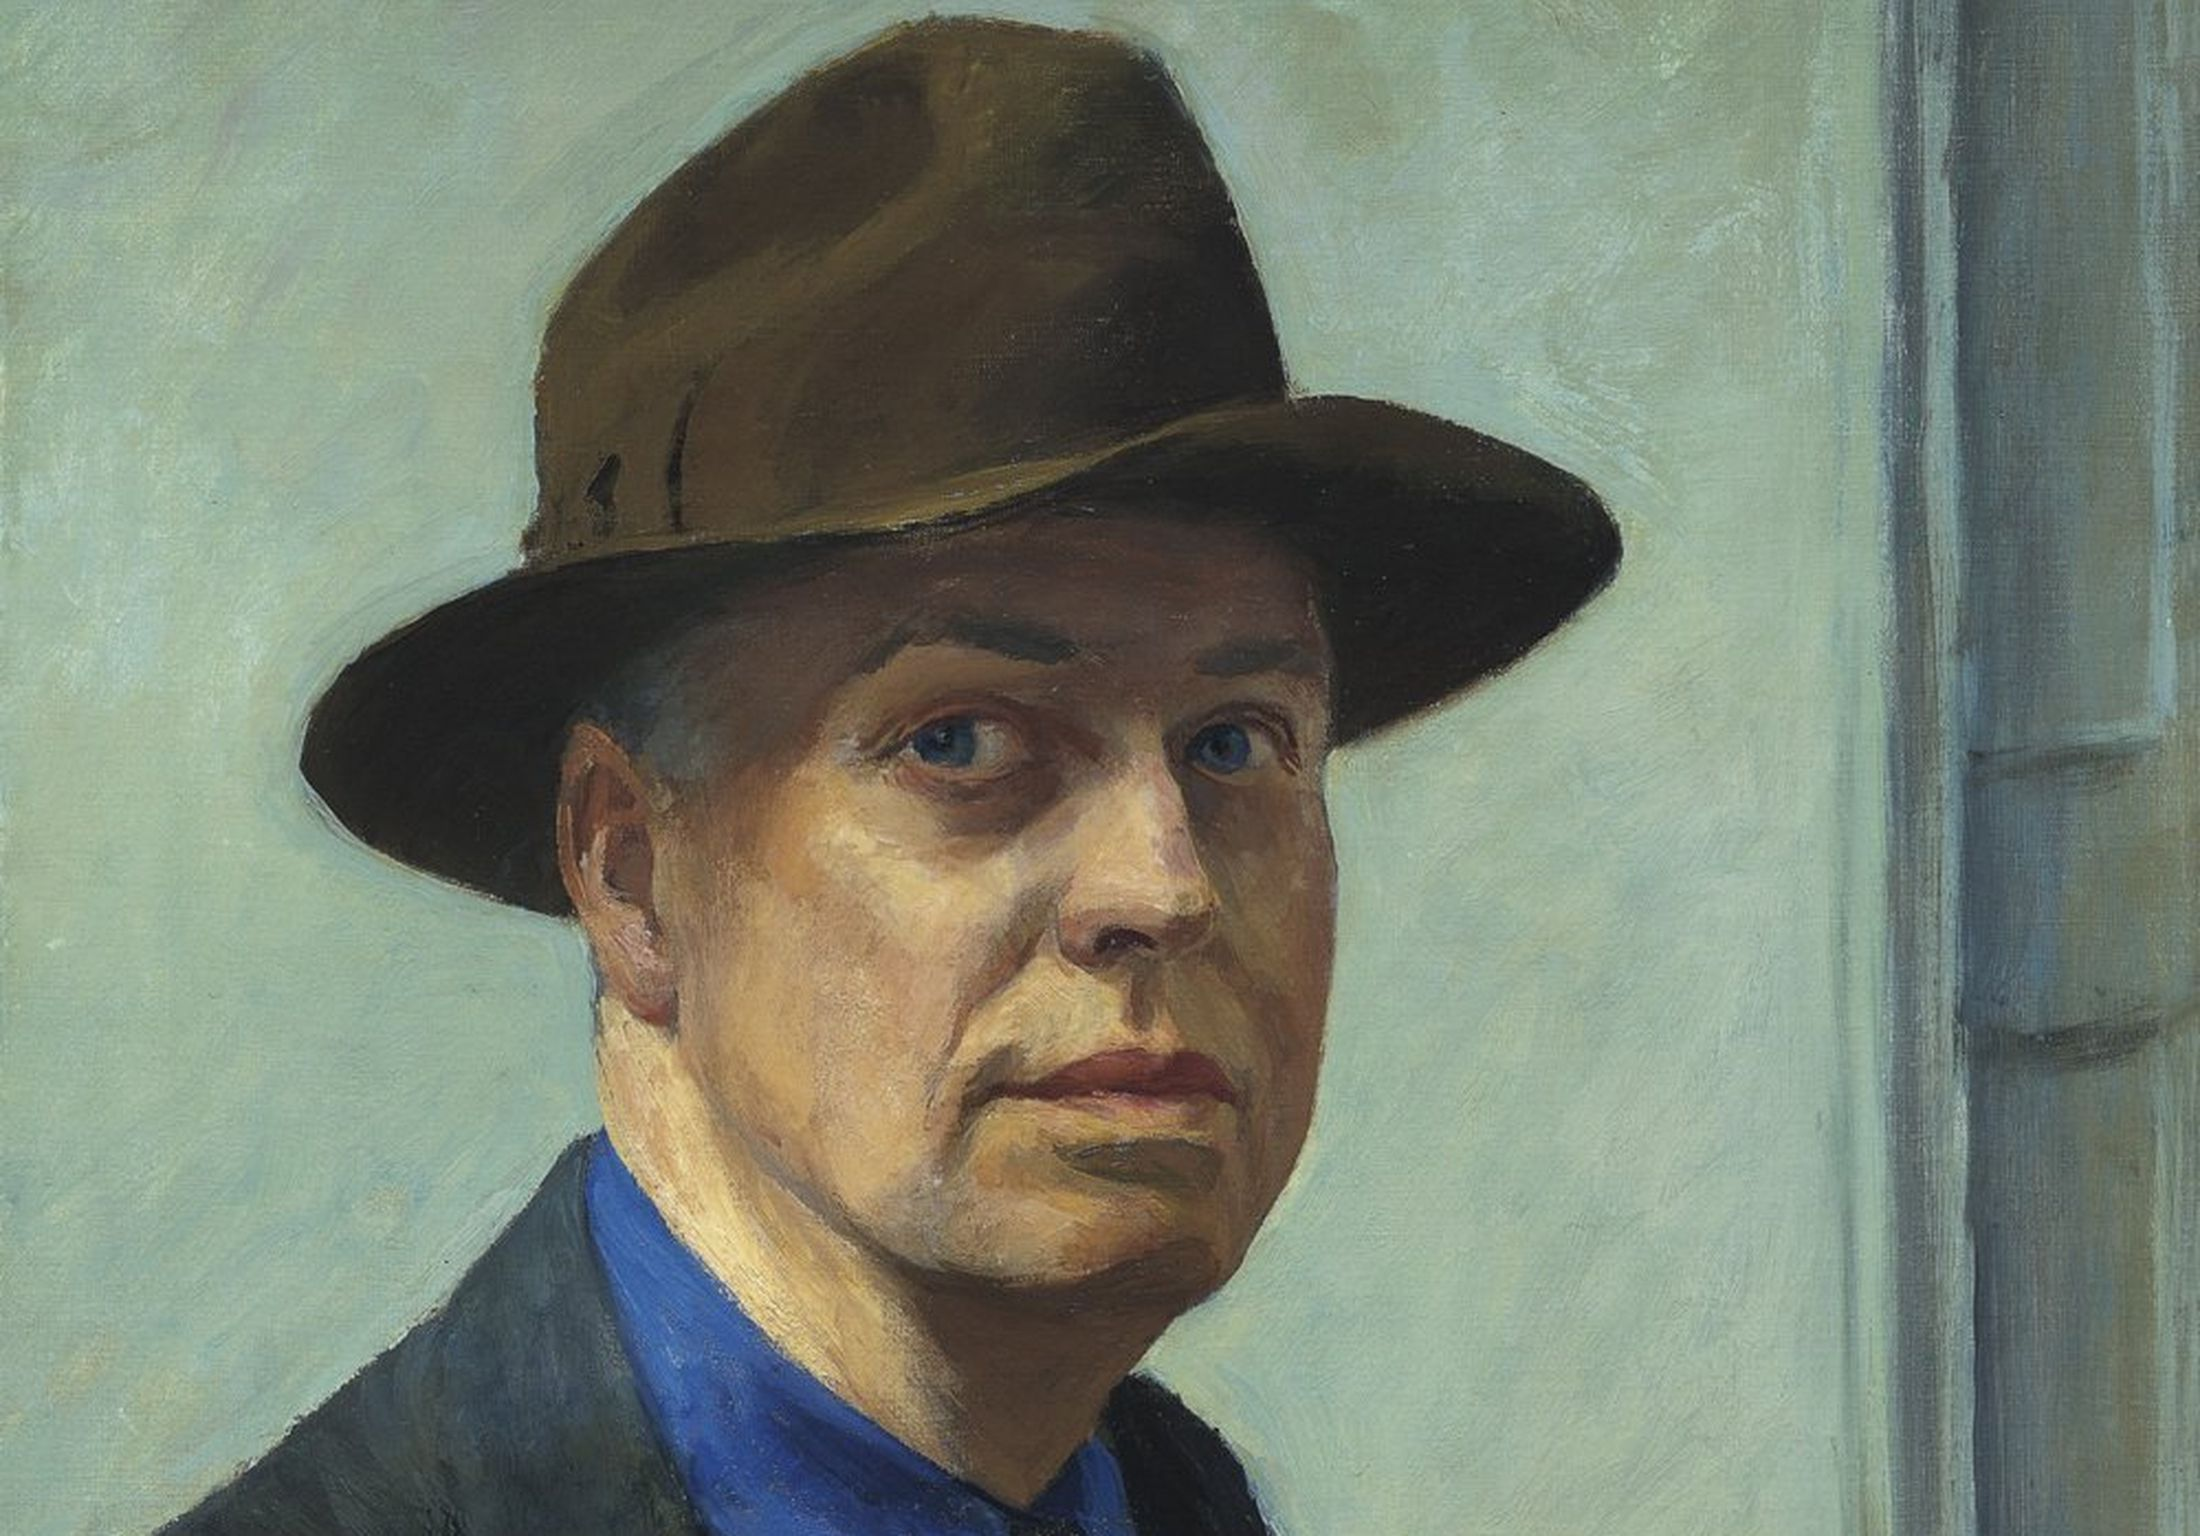 The Life and Art of Edward Hopper, American Realist Painter